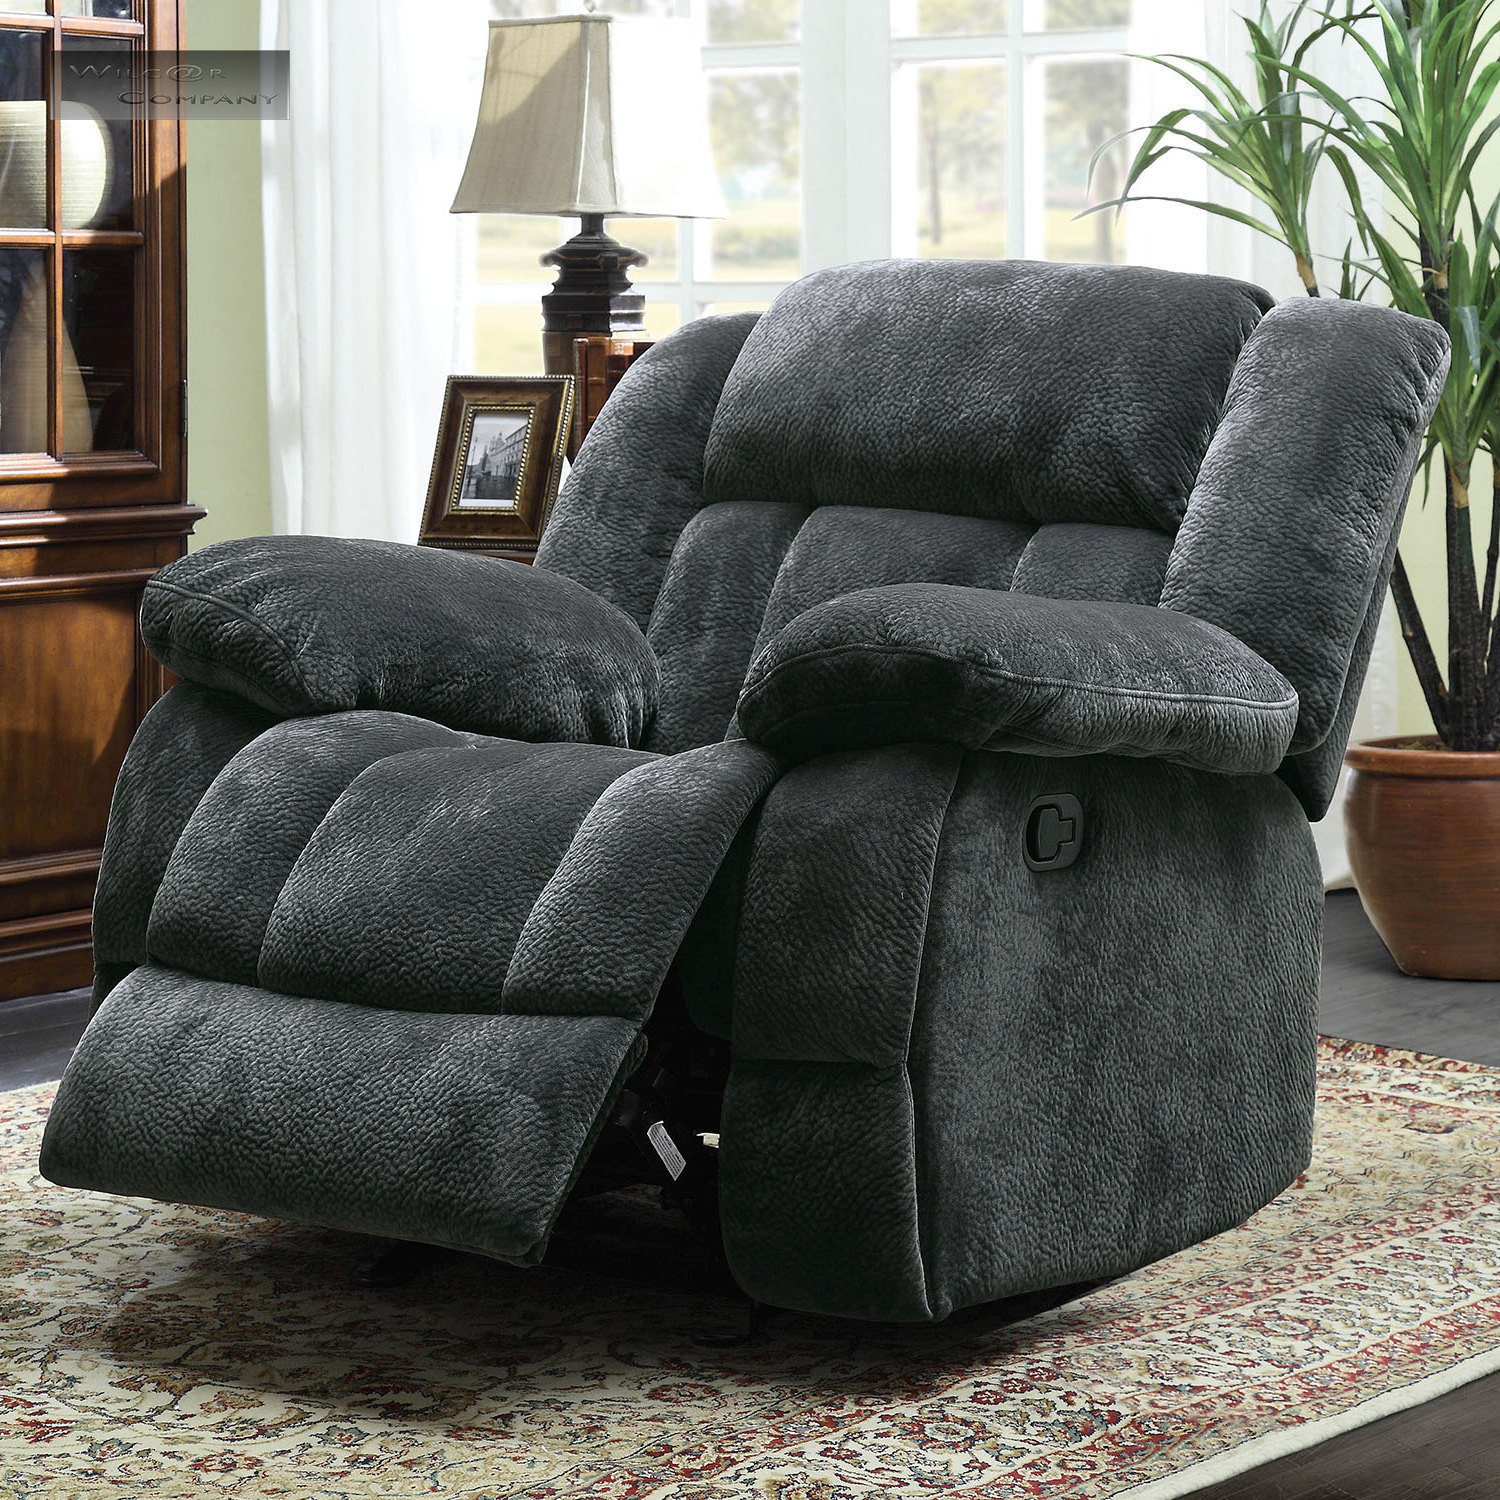 Grey Oversized Chair Grey Microfiber Oversized Glider Recliner Lazy Chair